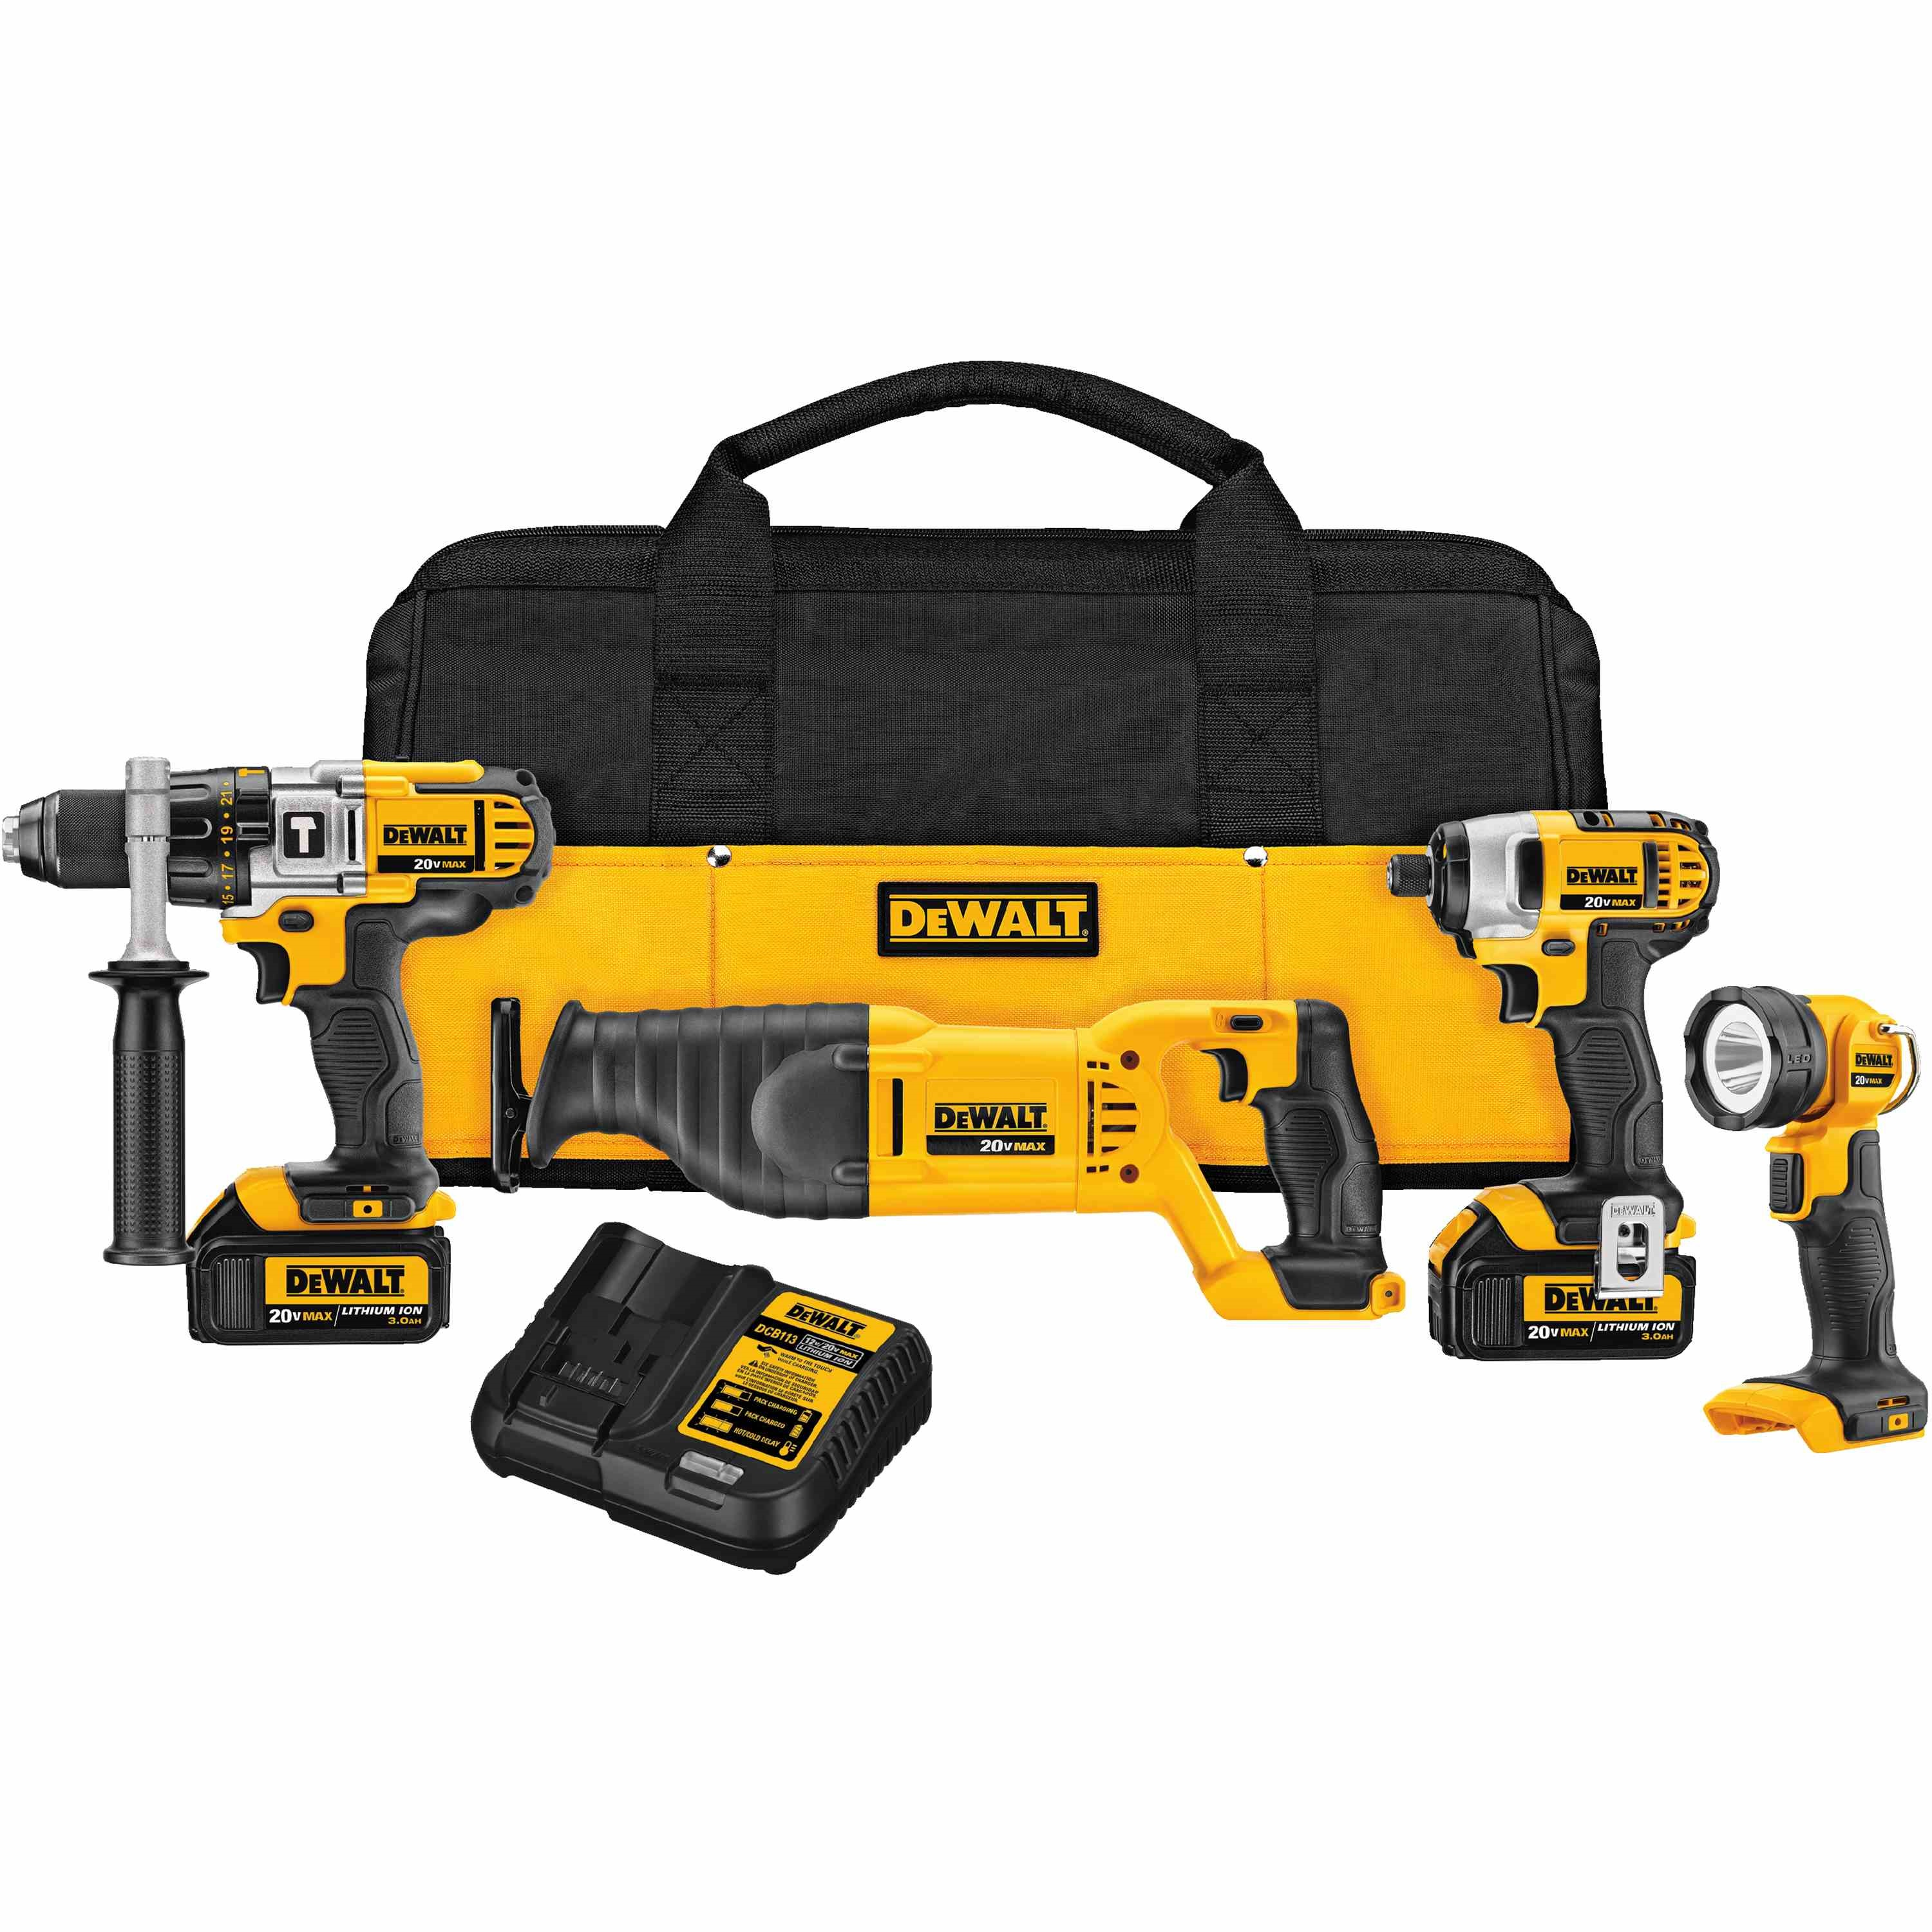 DWLT DCK490L2 20V MAX LI-ION 4-TOOL COMBO KIT (HD, REC, IMP, LIGHT, 3.0 AH)